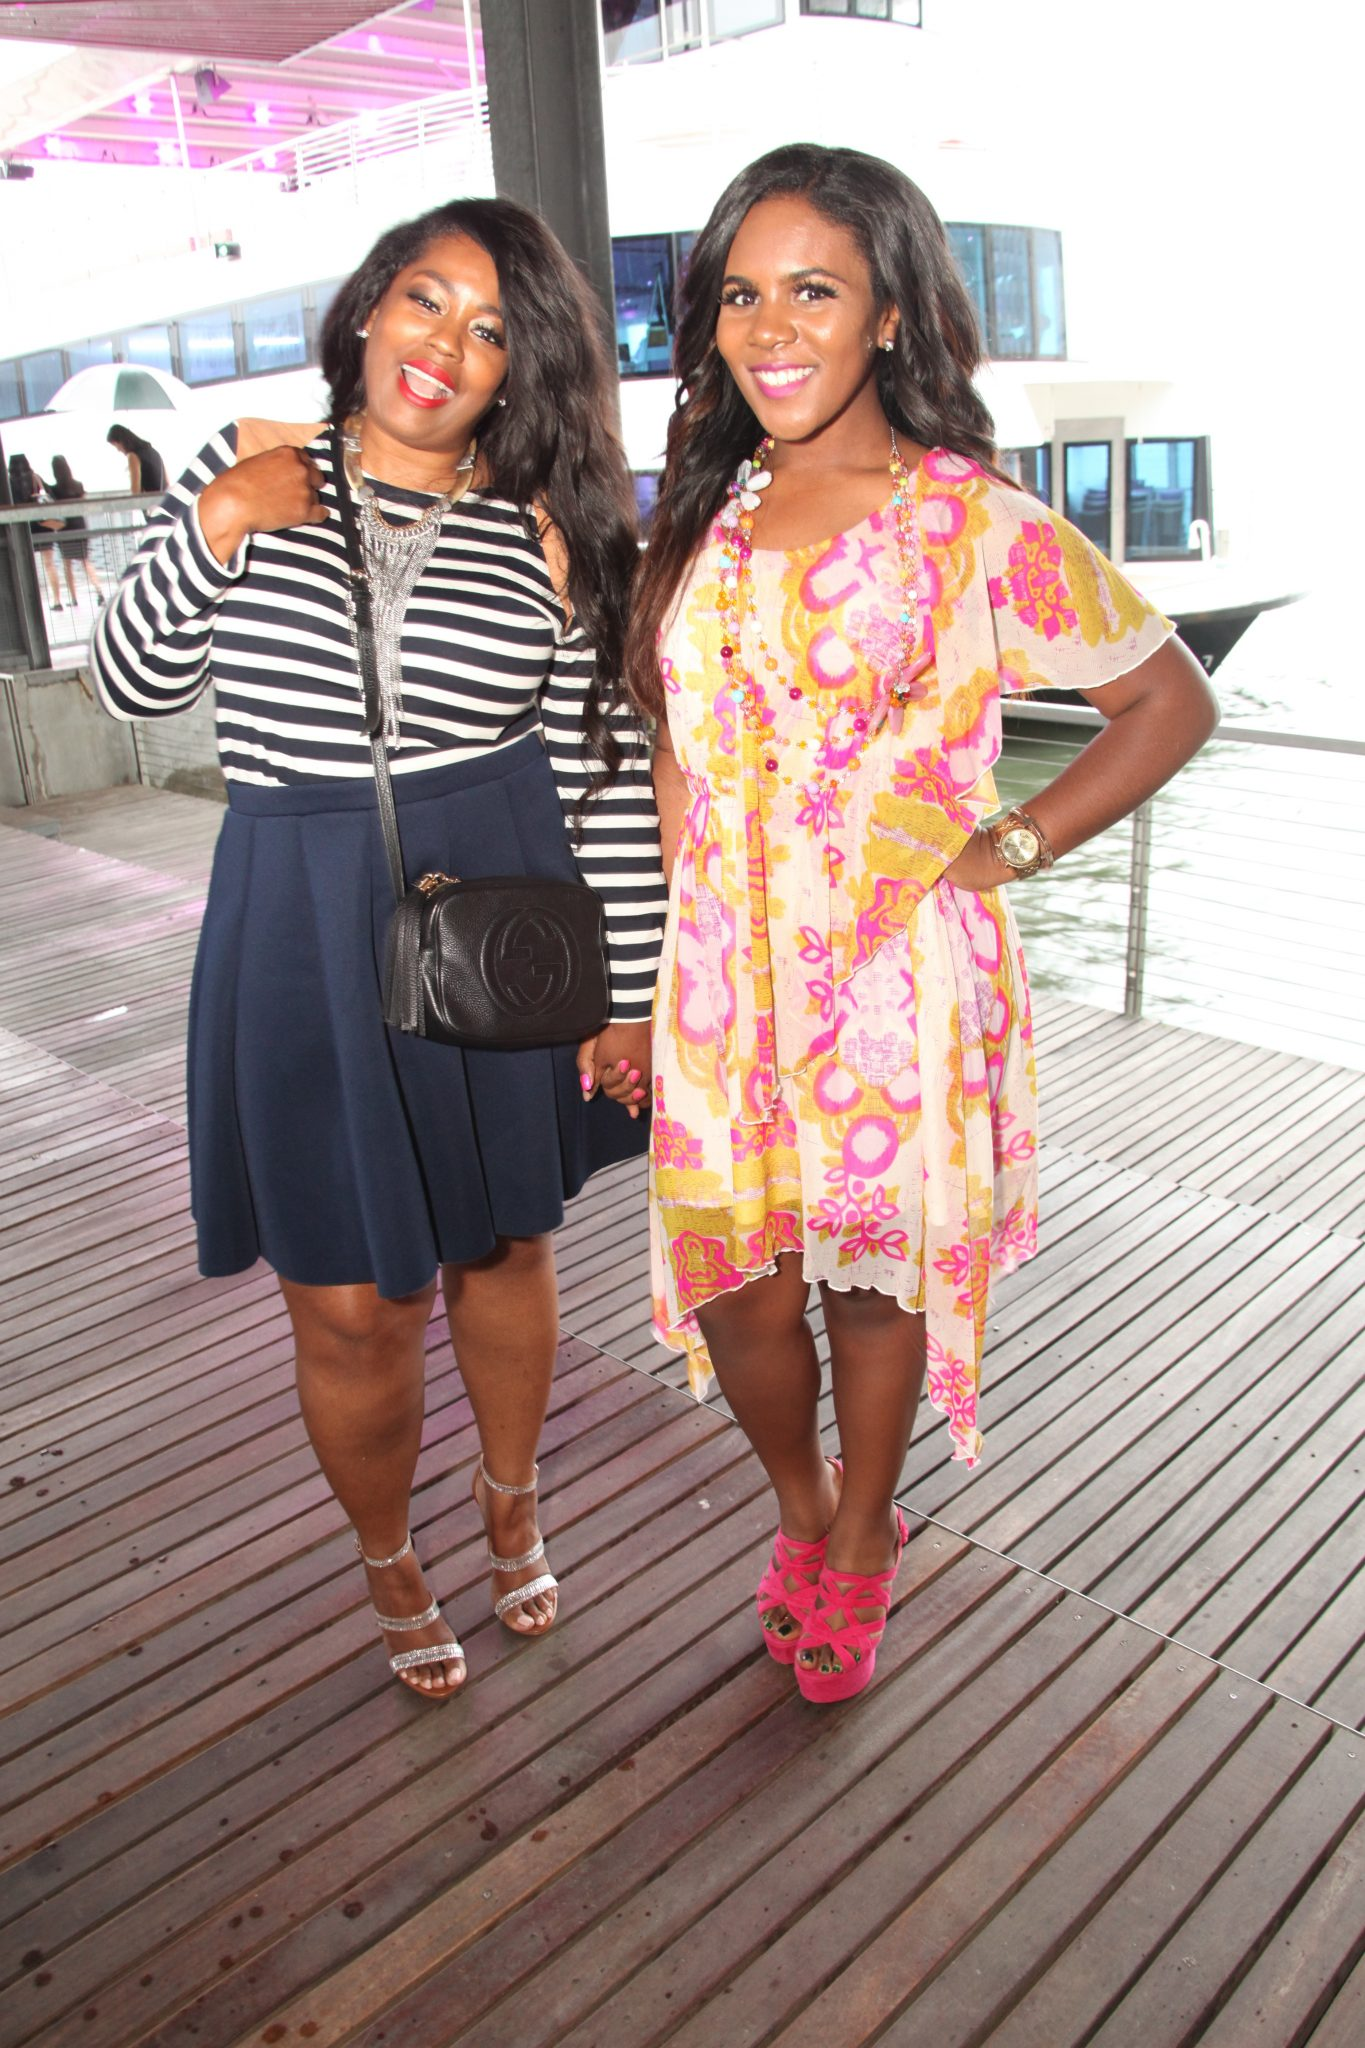 RUNWAY ON THE RIVER BOAT BASH! #NYFWCRUISE